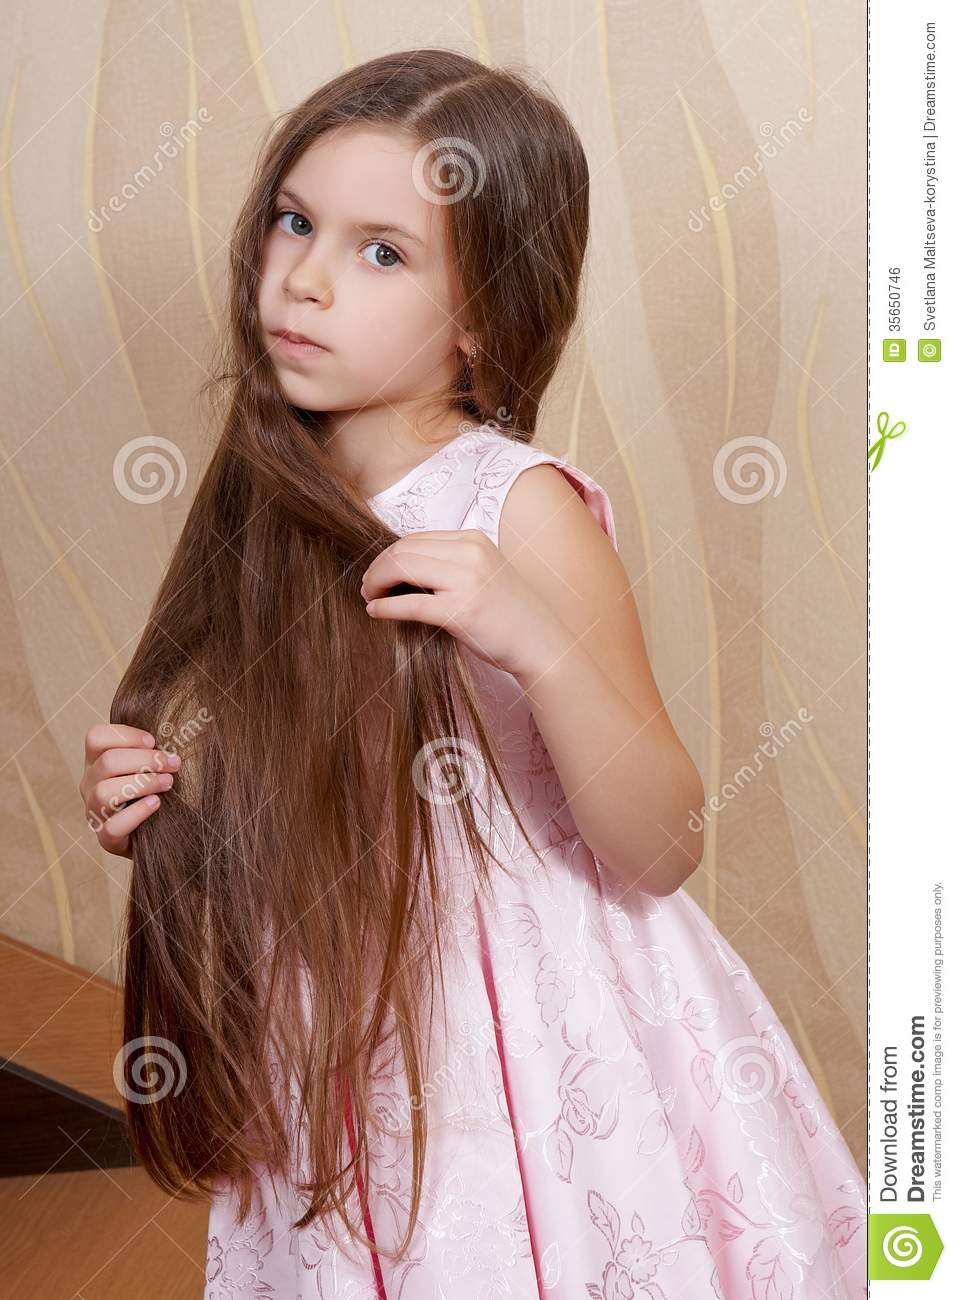 Little girl with a long hair royalty free stock image image